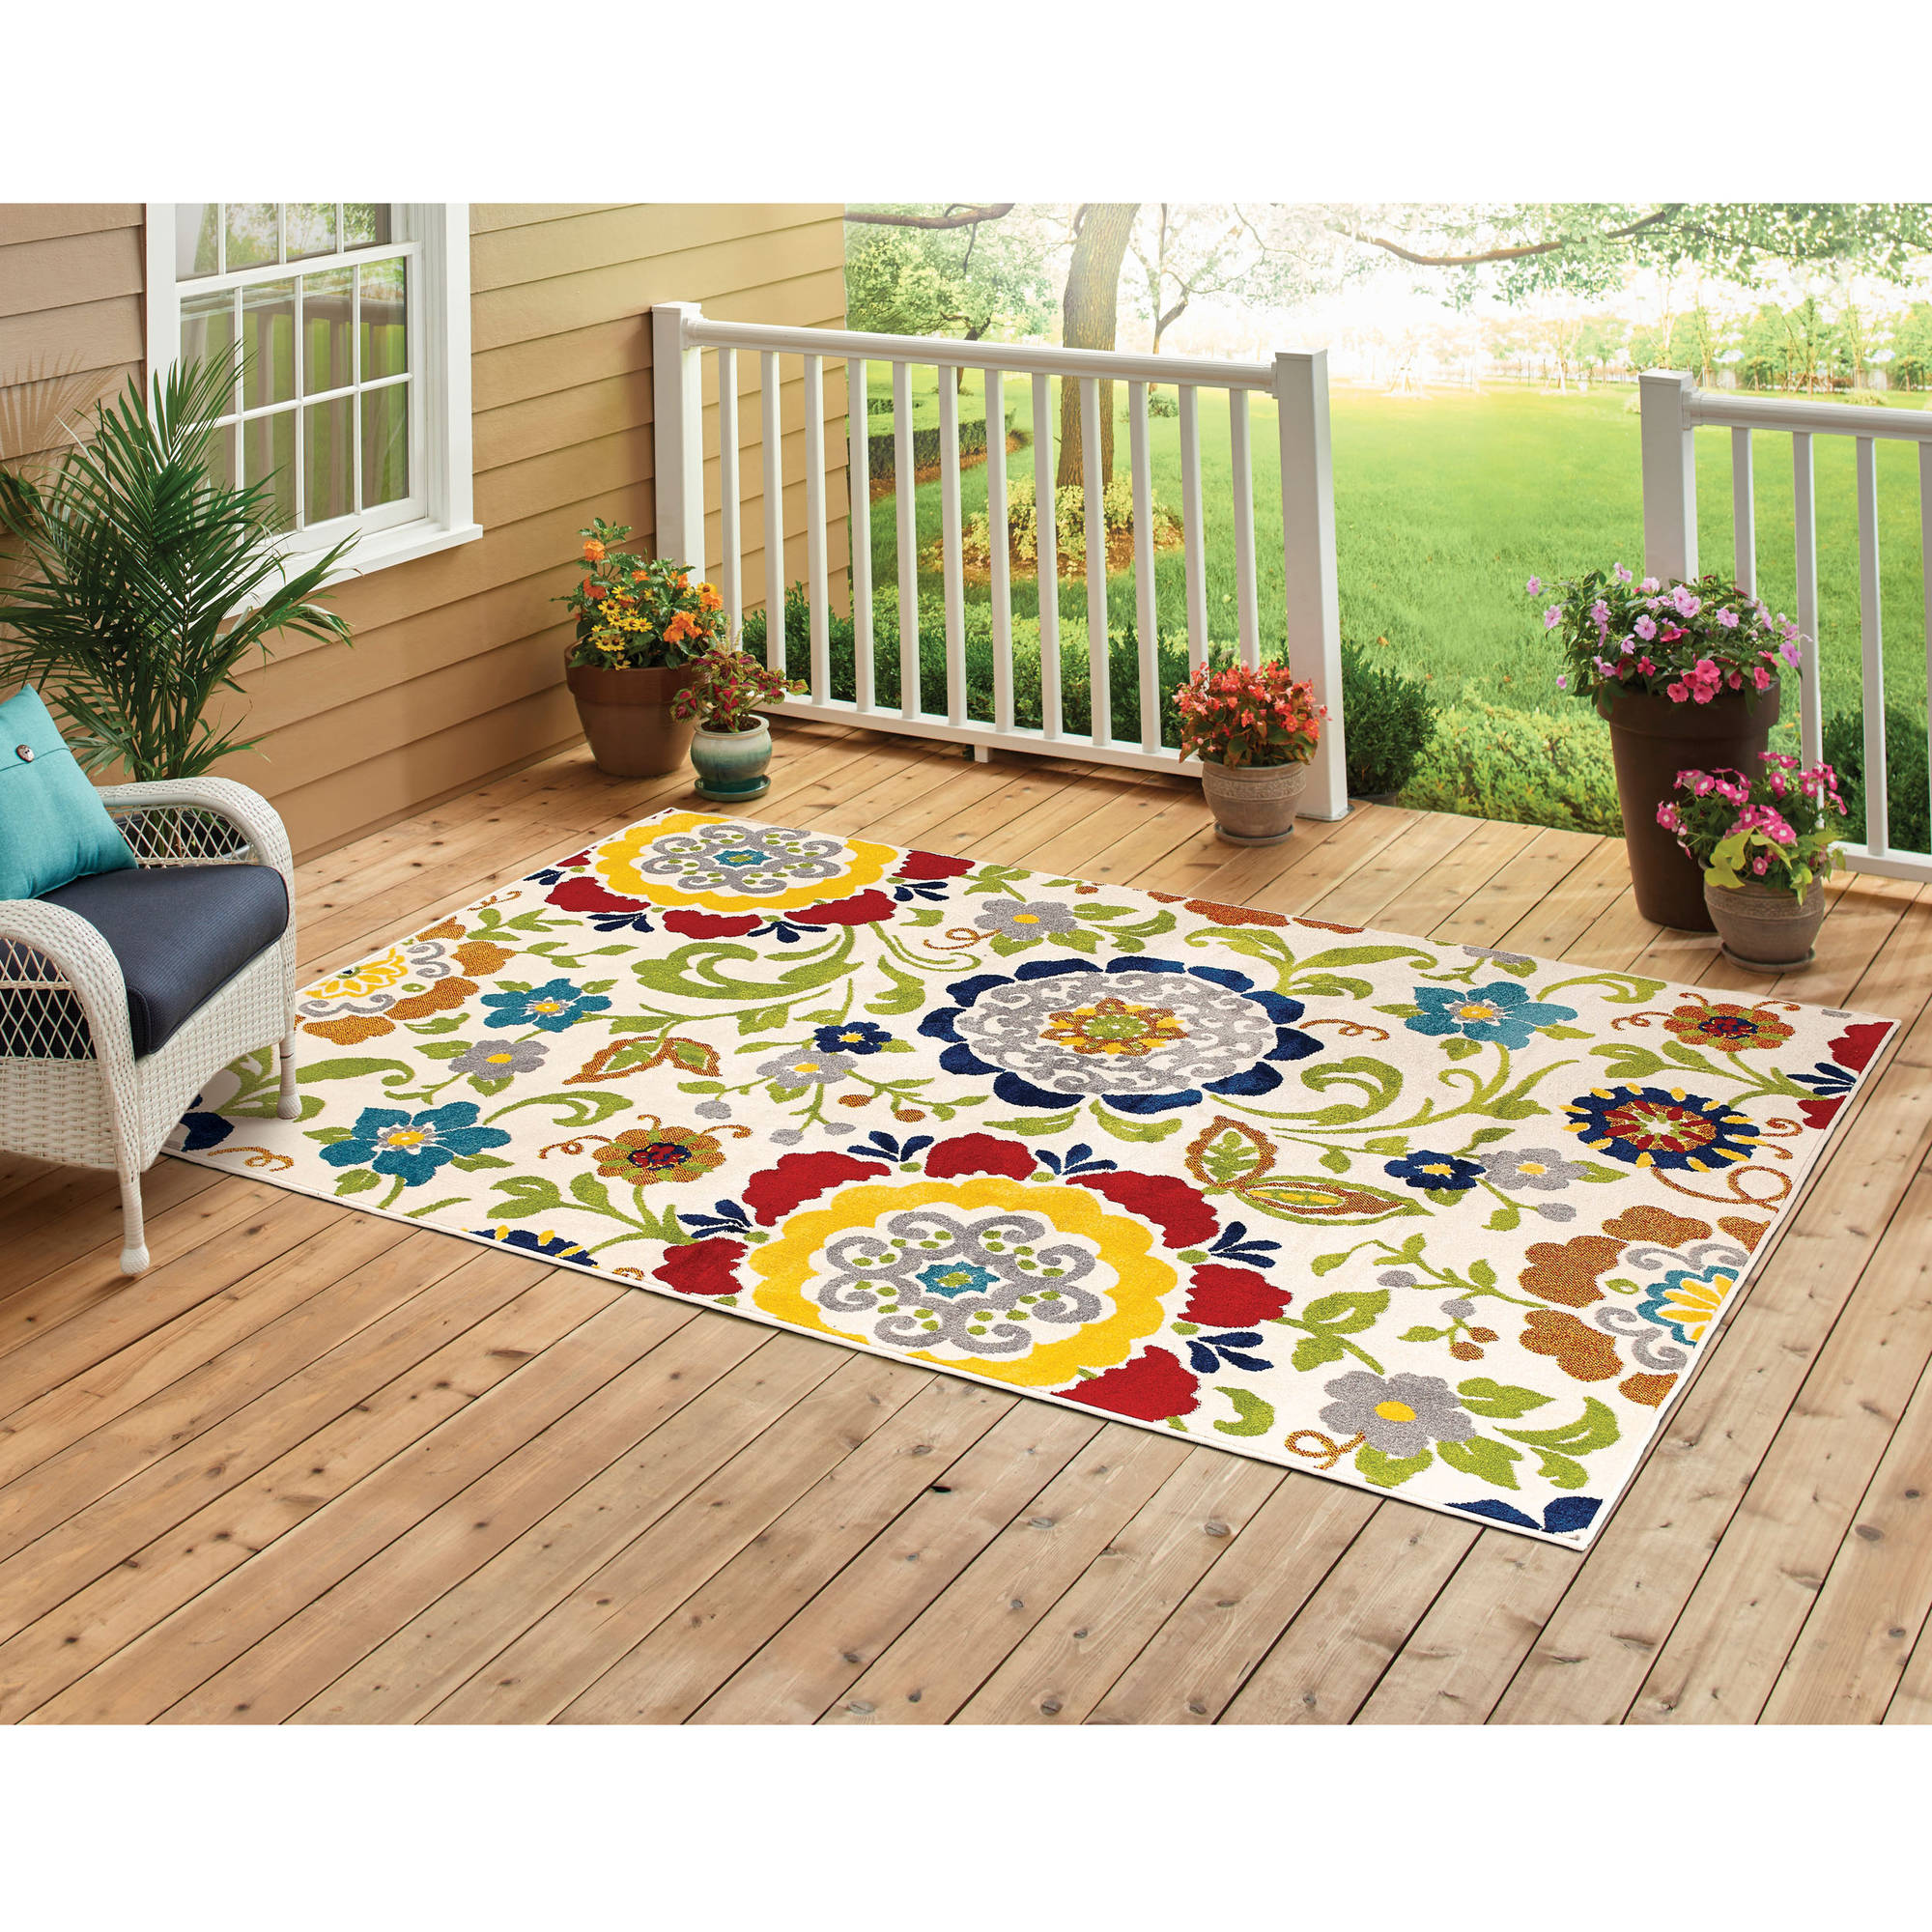 walmart outdoor rugs | Home Decor - photo#17